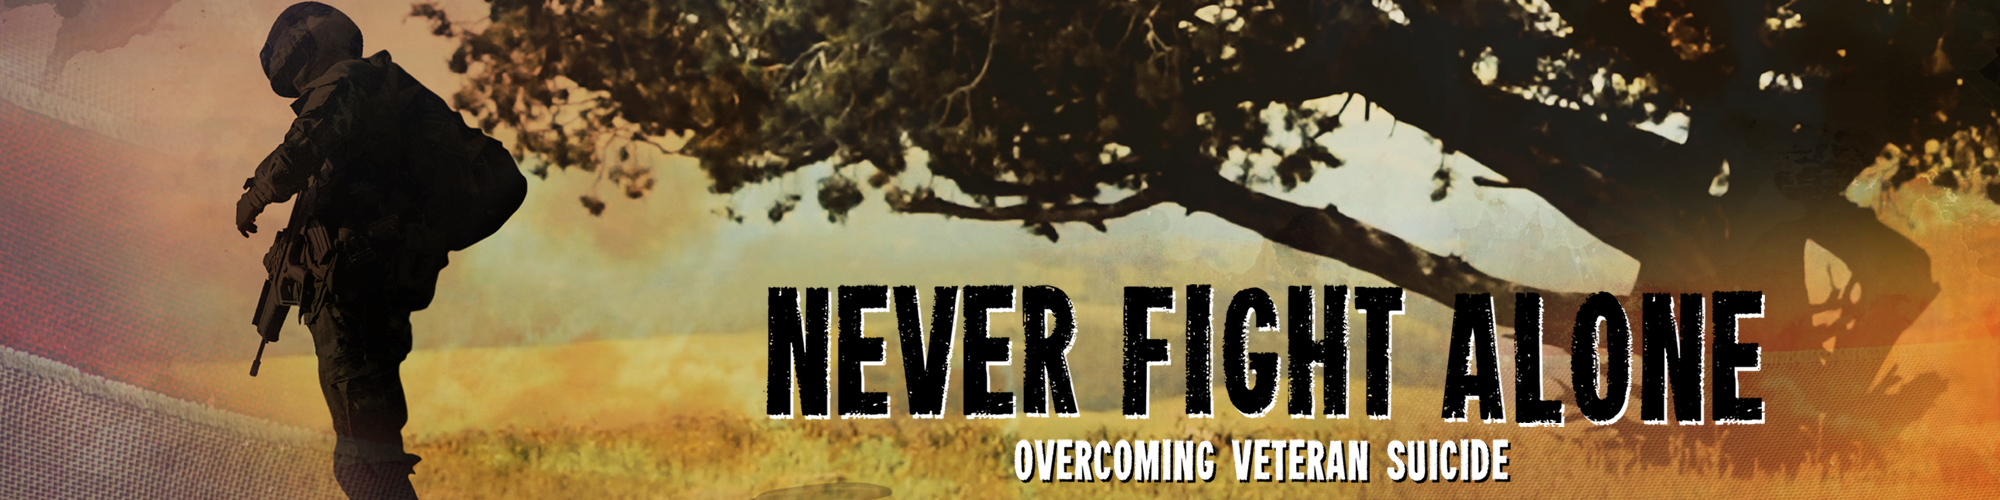 Never-Fight-Alone_banner